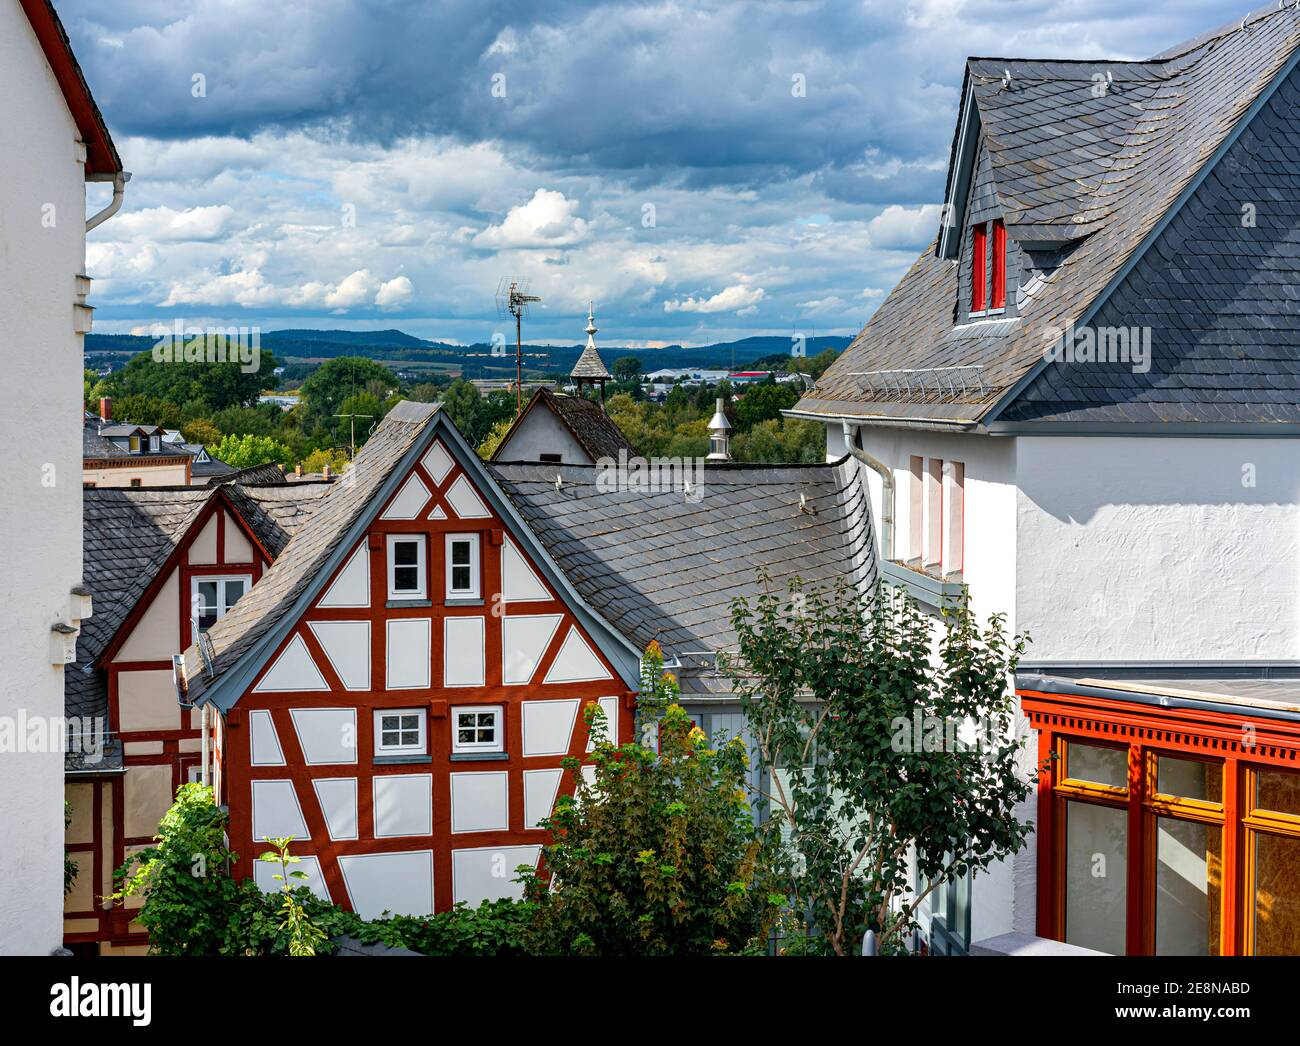 Half-timbered House In The Old Town Of Limburg An Der Lahn, Hesse Stock Photo